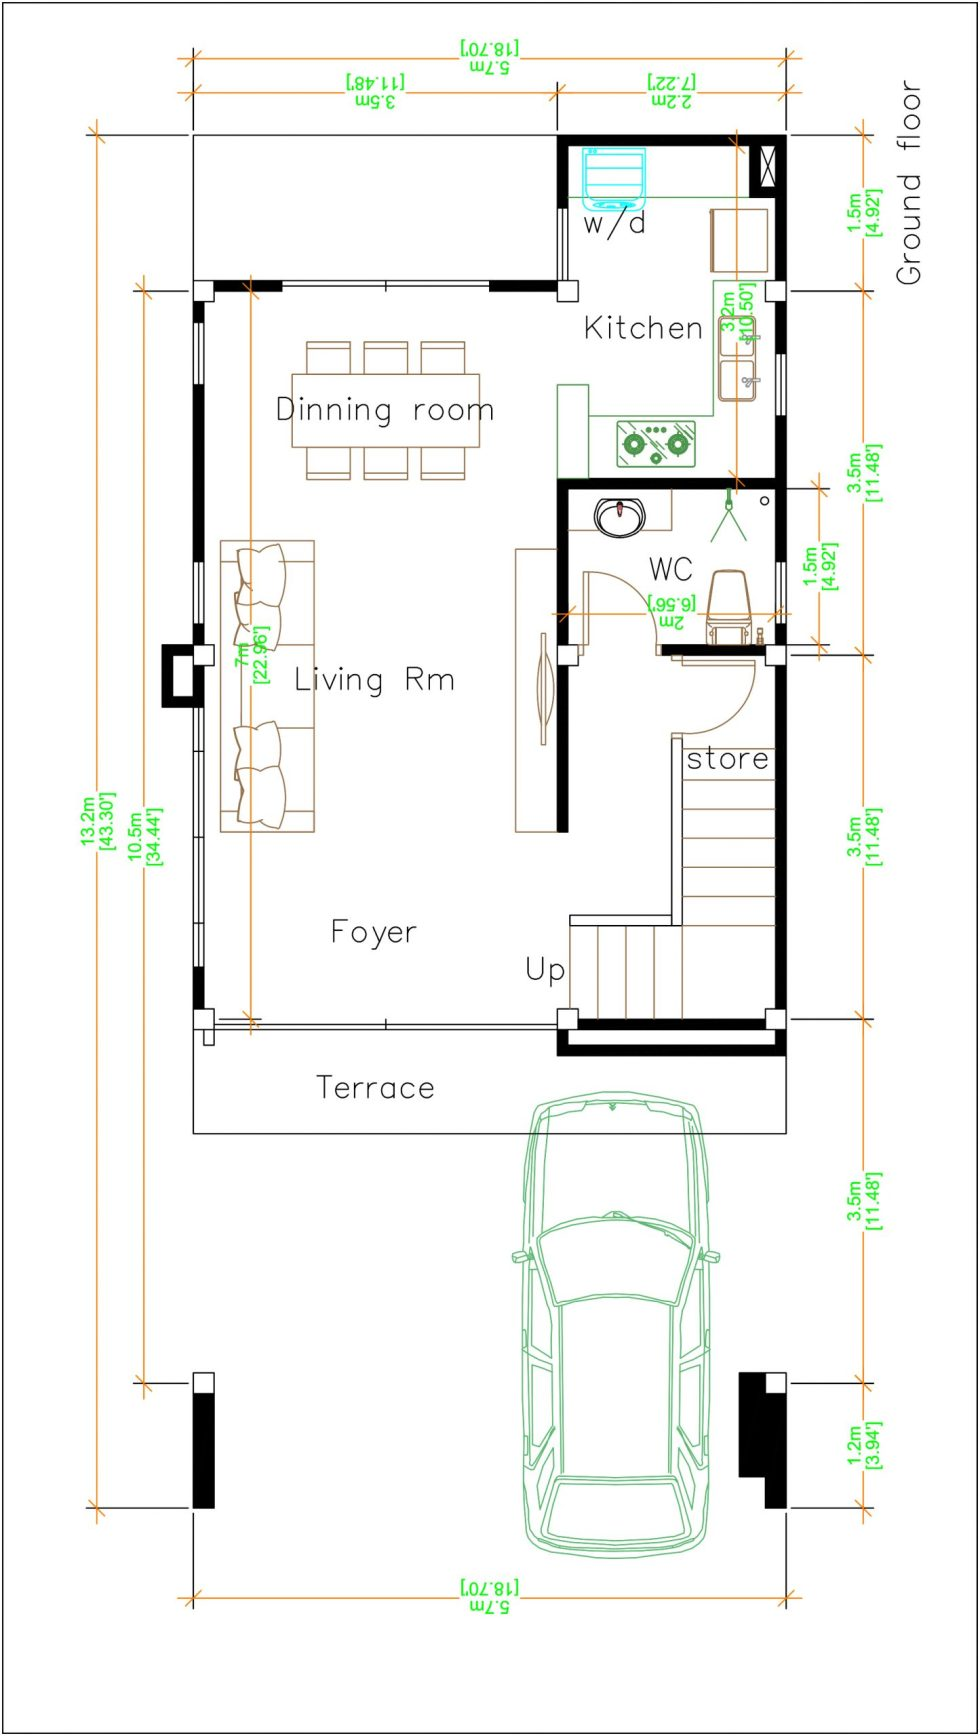 House Plans 5.5x10.5 with 4 bedrooms ground floor